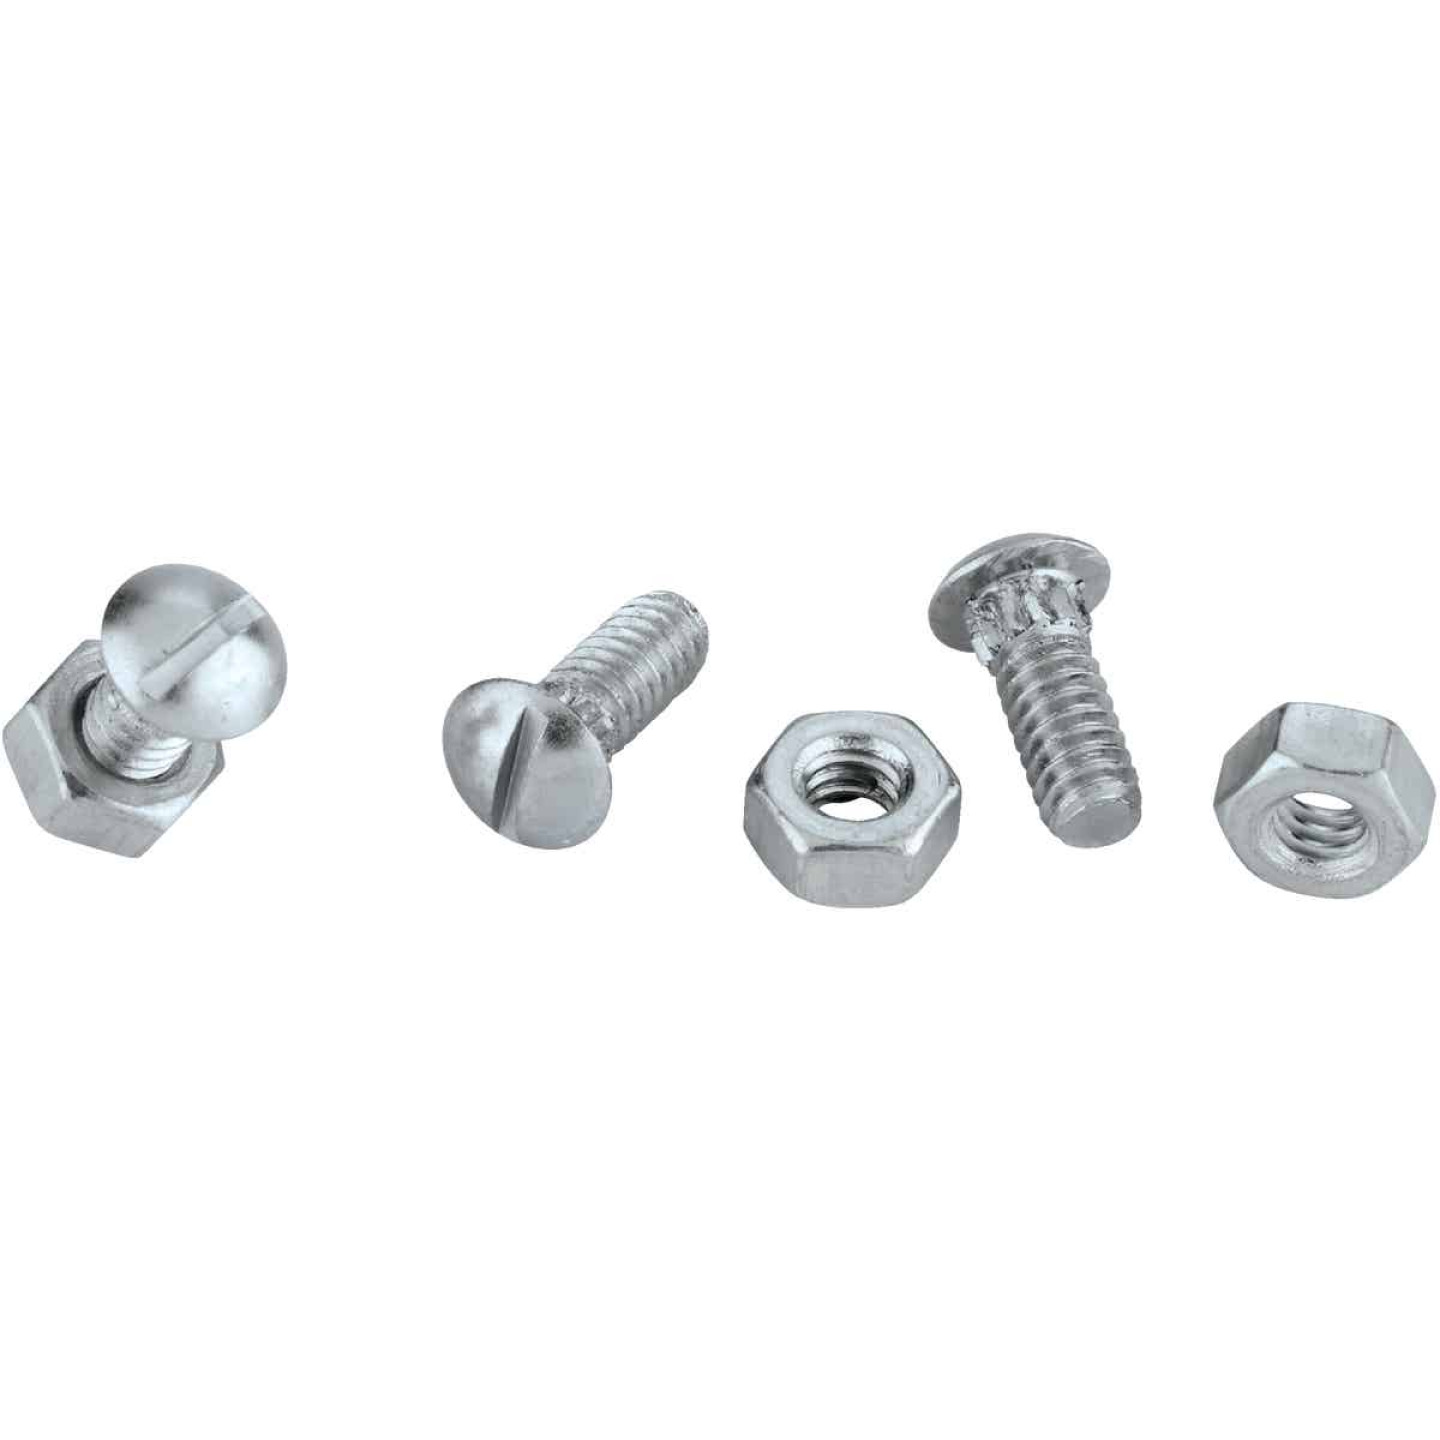 National 1/4 In. x 1/2 In. Zinc Ribbed Neck Bolt & Nut (12 Ct.) Image 3